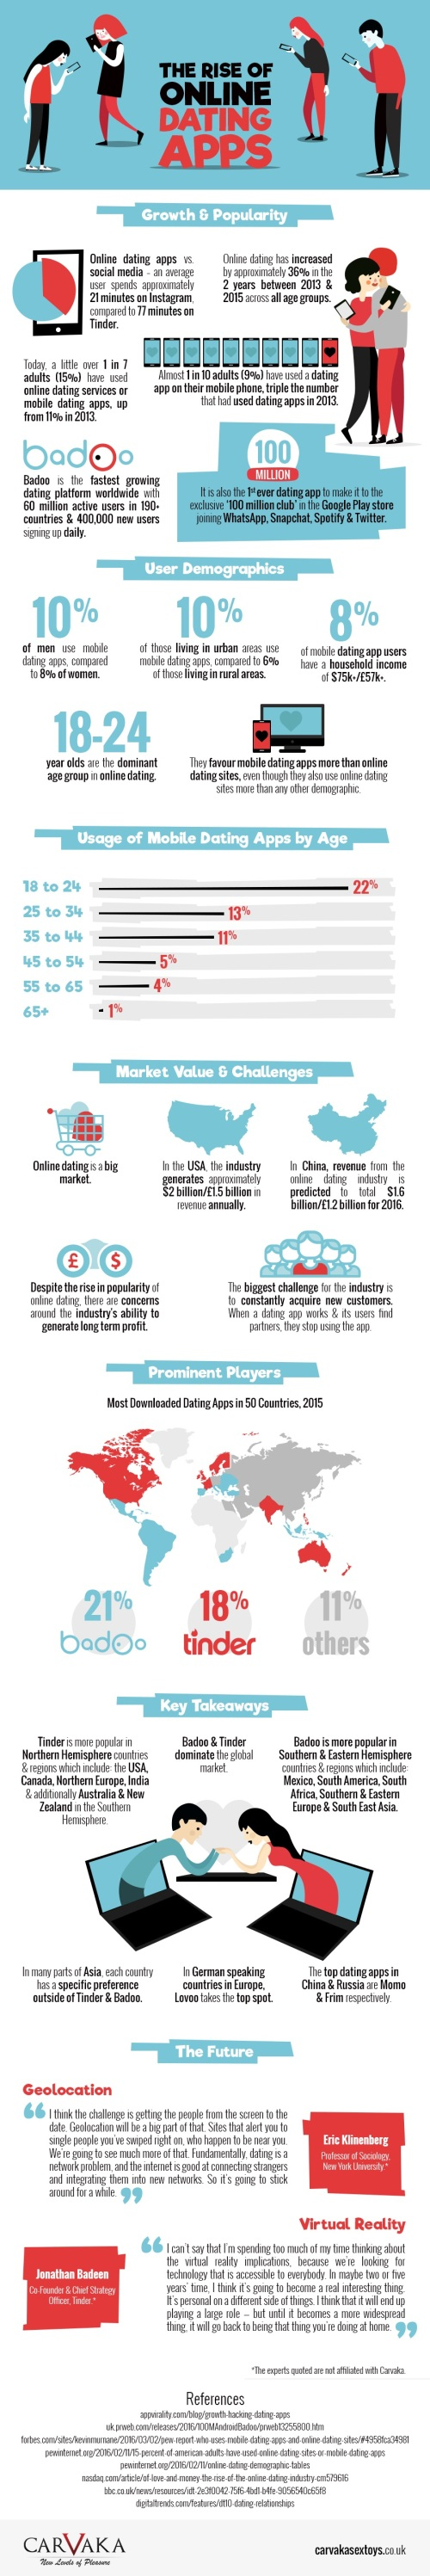 the-rise-of-online-dating-apps-infographic